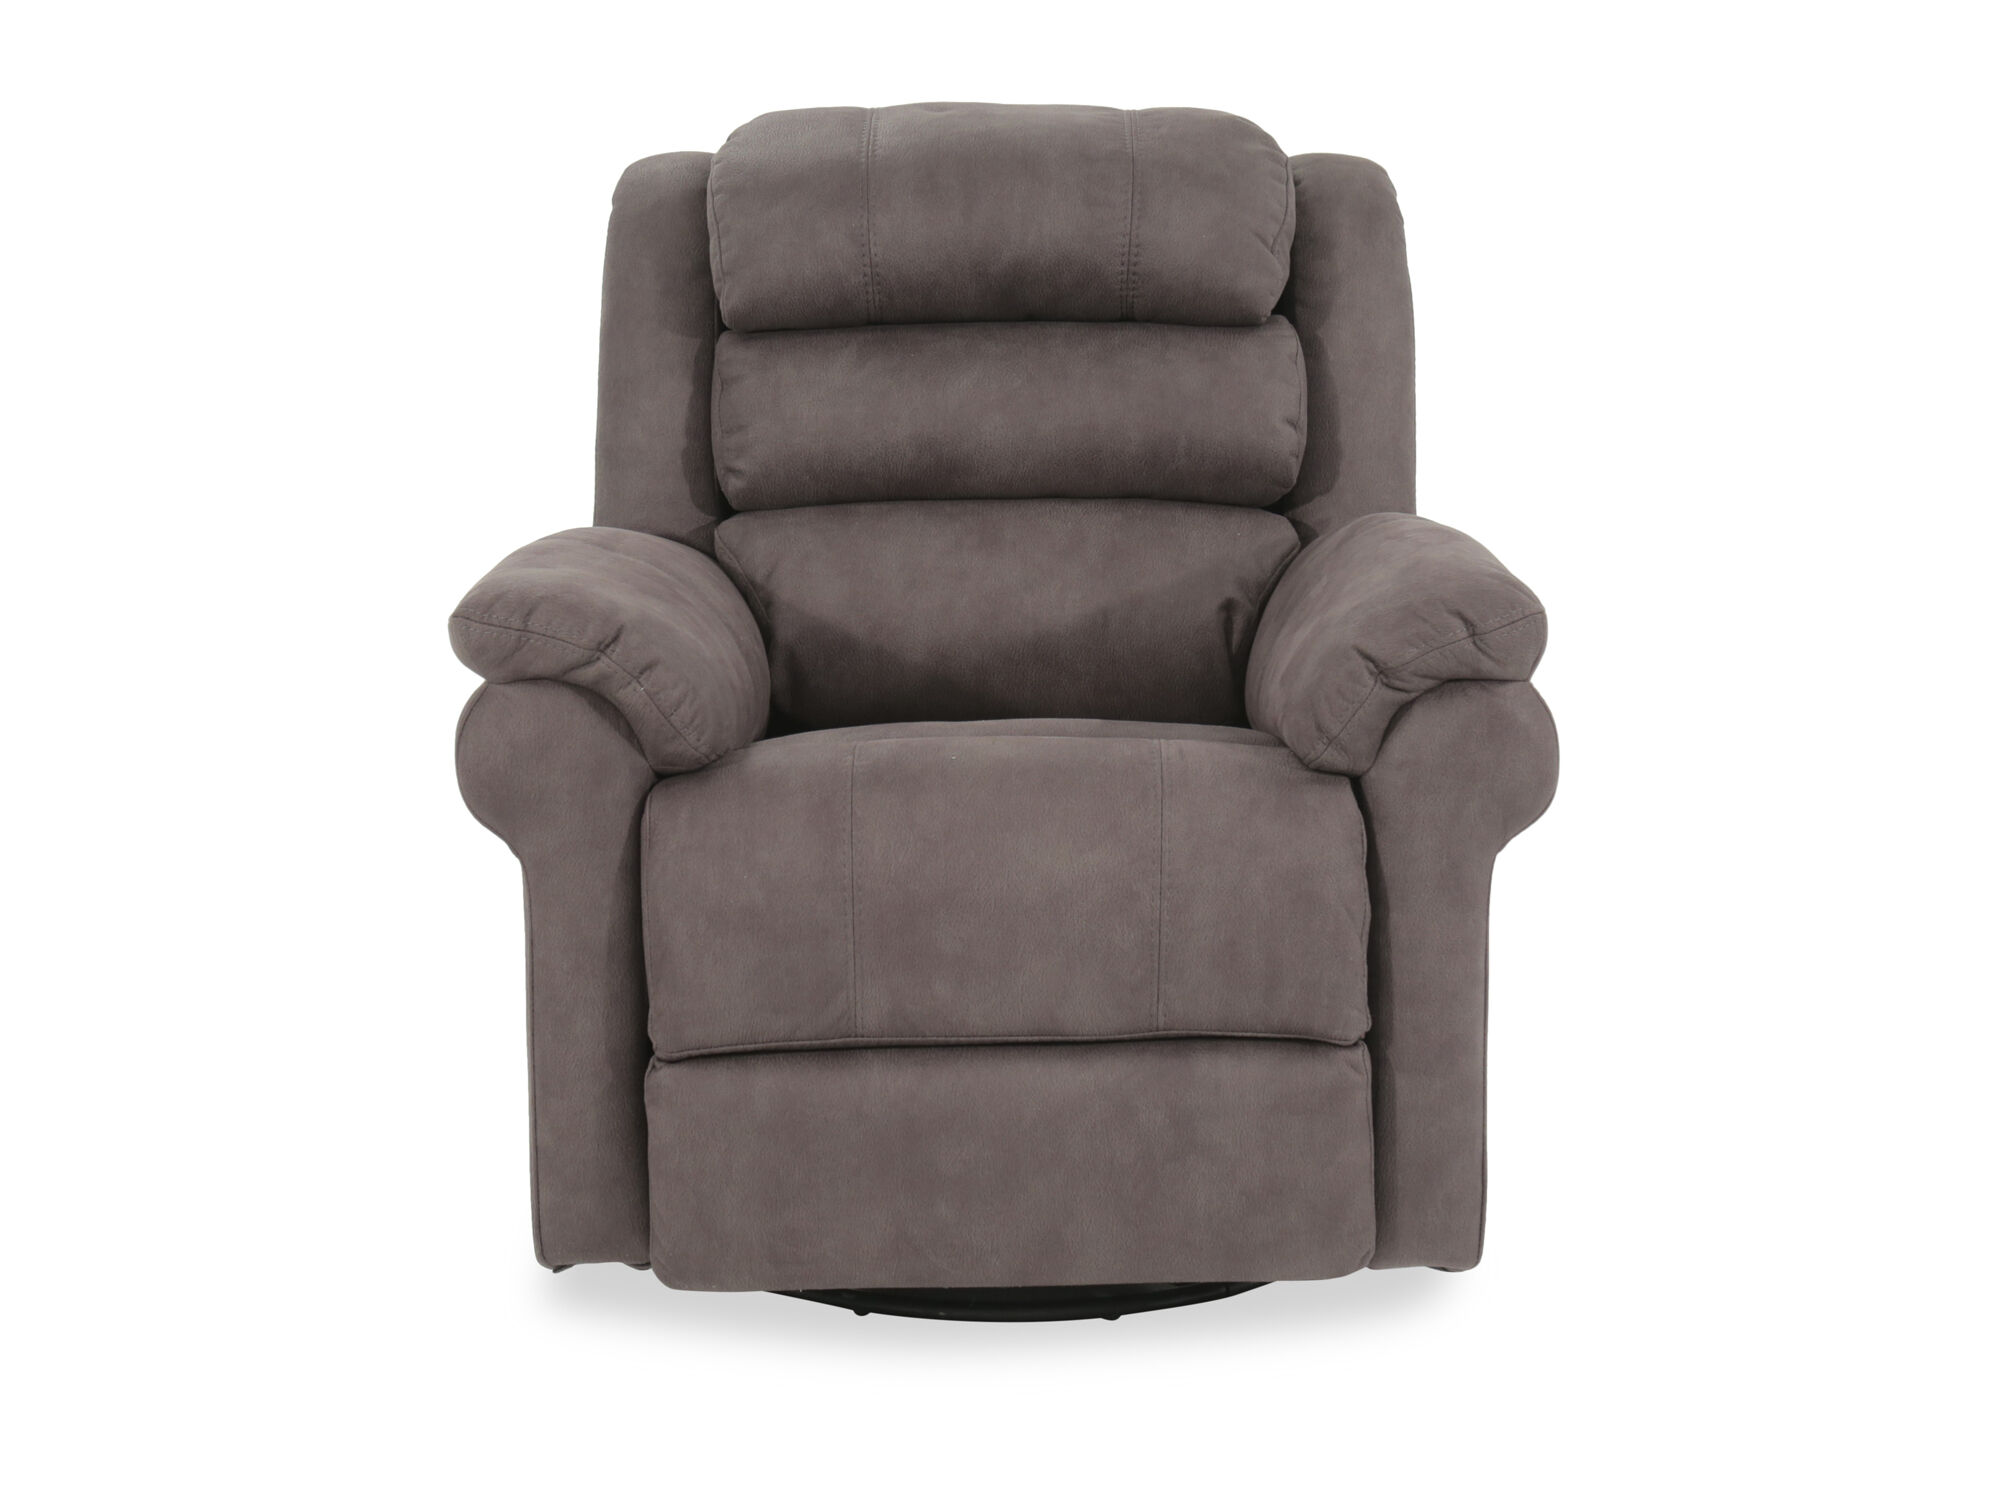 Gray Recliner Chair Casual 38 Quot Power Swivel Glider Recliner In Gray Mathis